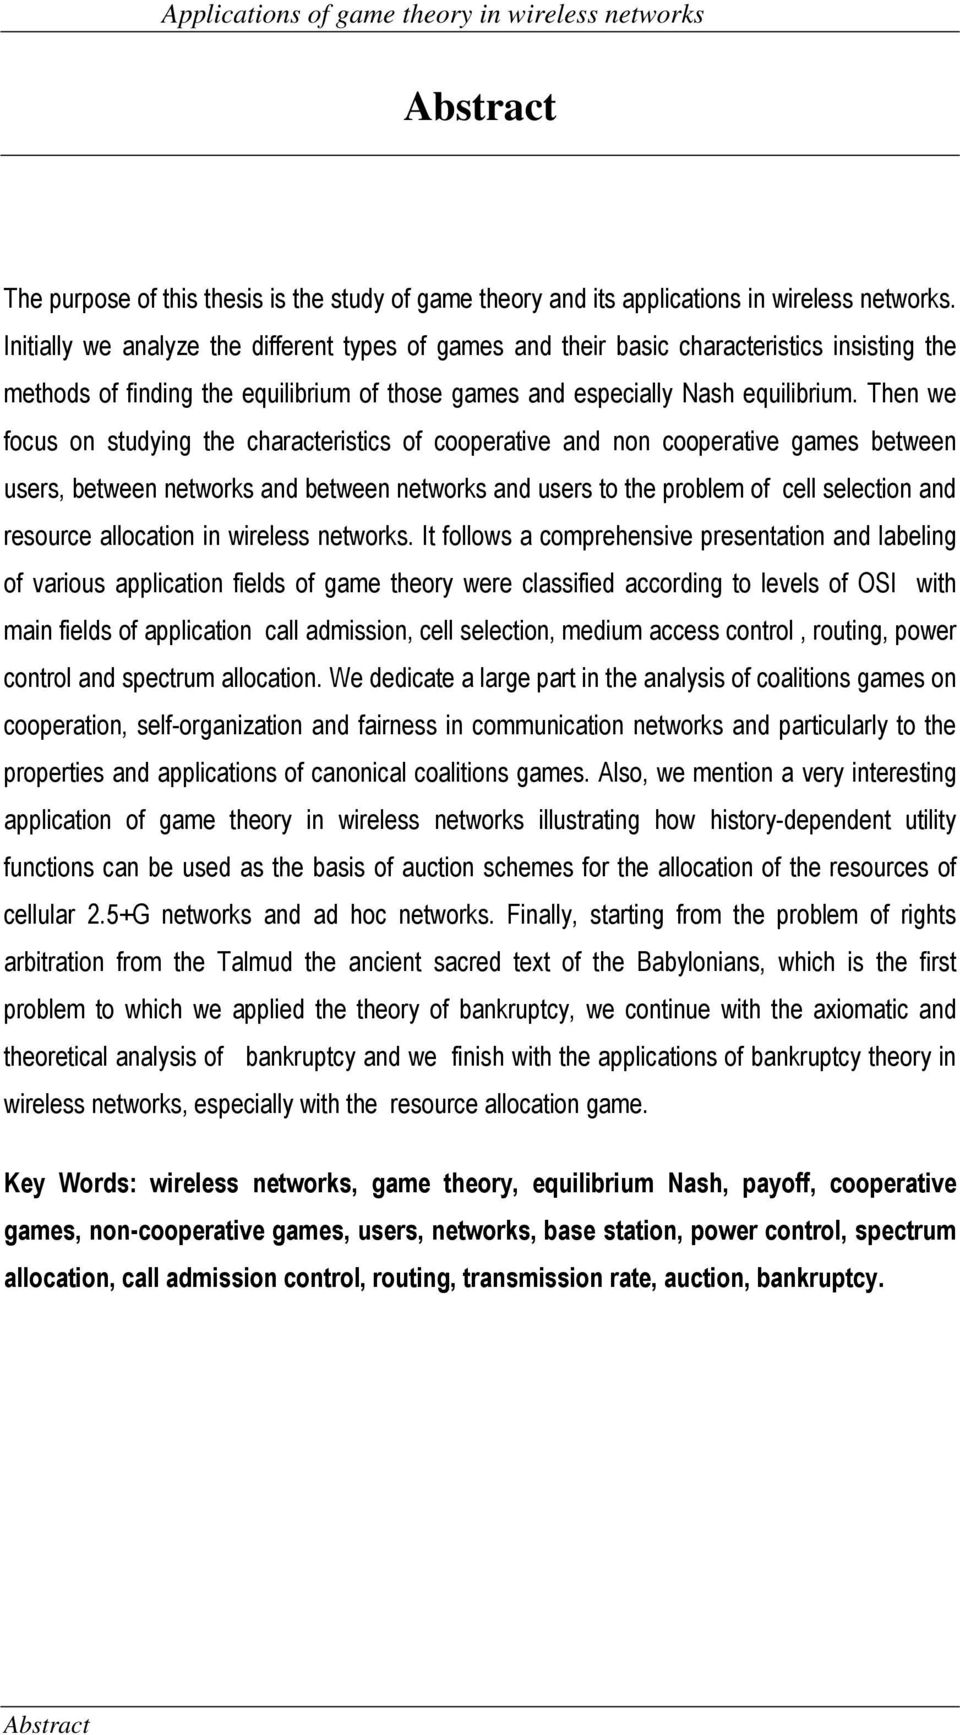 Then we focus on studying the characteristics of cooperative and non cooperative games between users, between networks and between networks and users to the problem of cell selection and resource